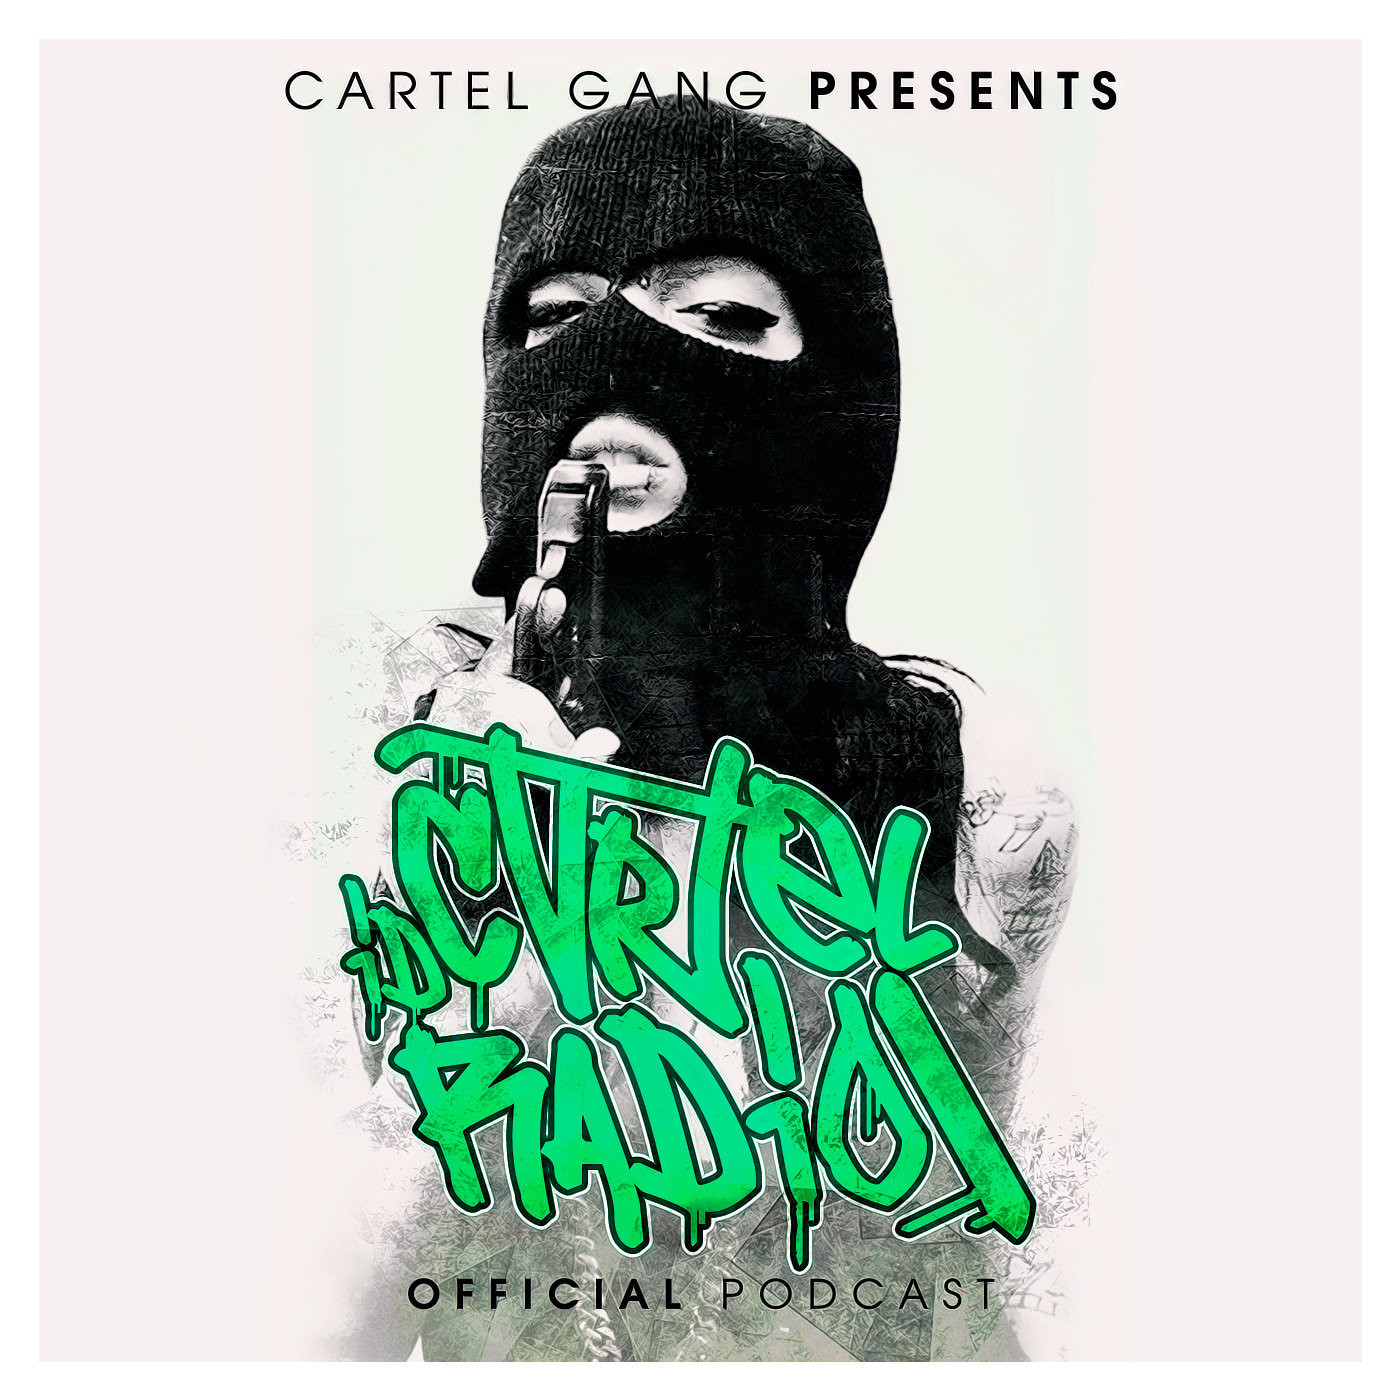 Cartel ID Radio (Official Podcast)